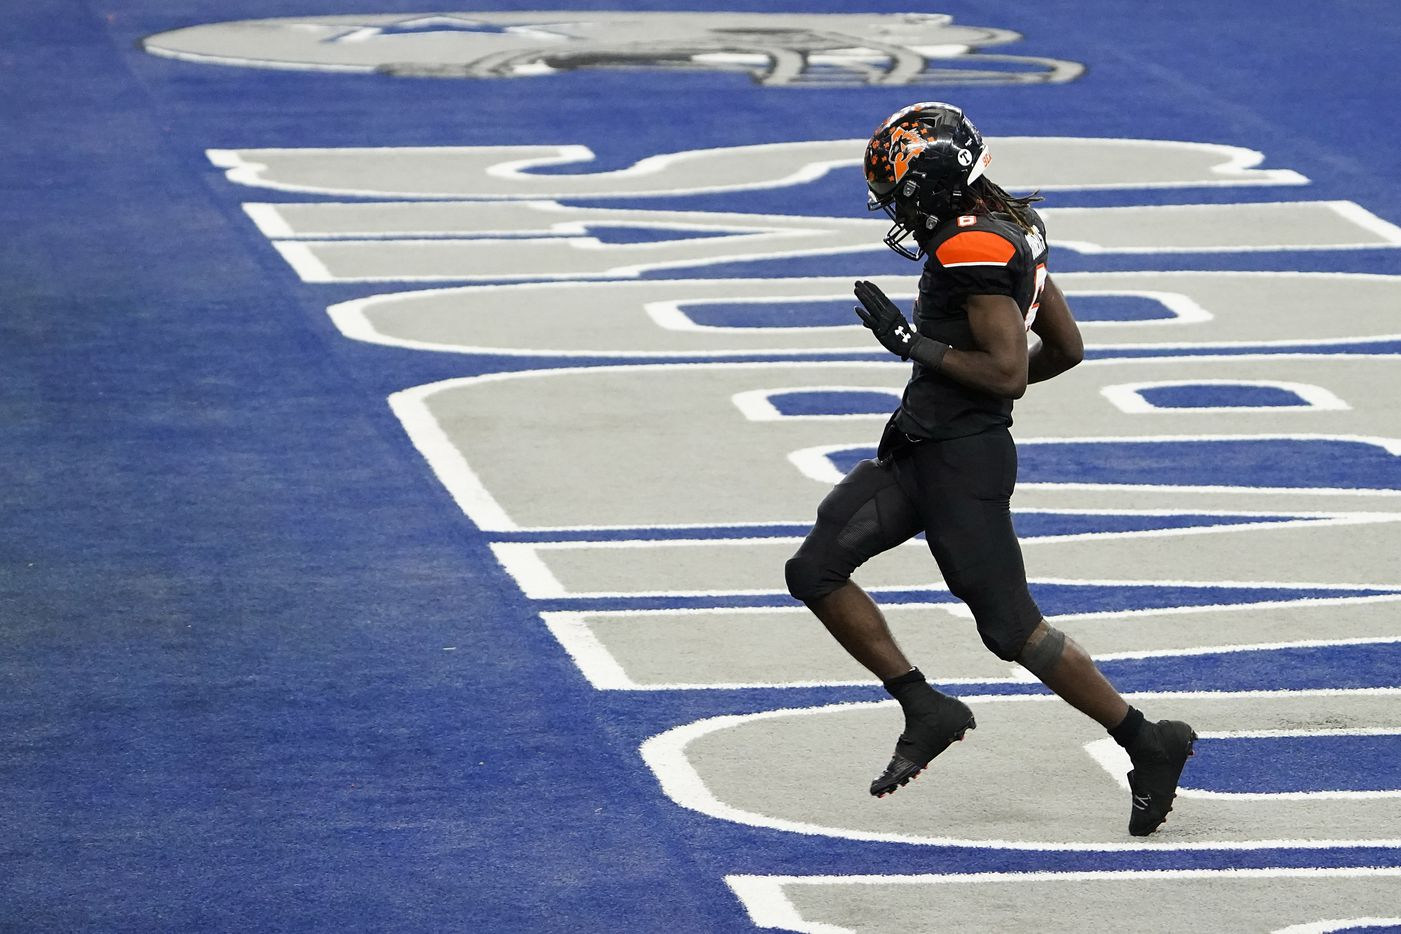 Aledo running back DeMarco Roberts (6) celebrates after scoring on a 20-yard touchdown run during the first half of the Class 5A Division II state football championship game against Crosby  at AT&T Stadium on Friday, Jan. 15, 2021, in Arlington. (Smiley N. Pool/The Dallas Morning News)